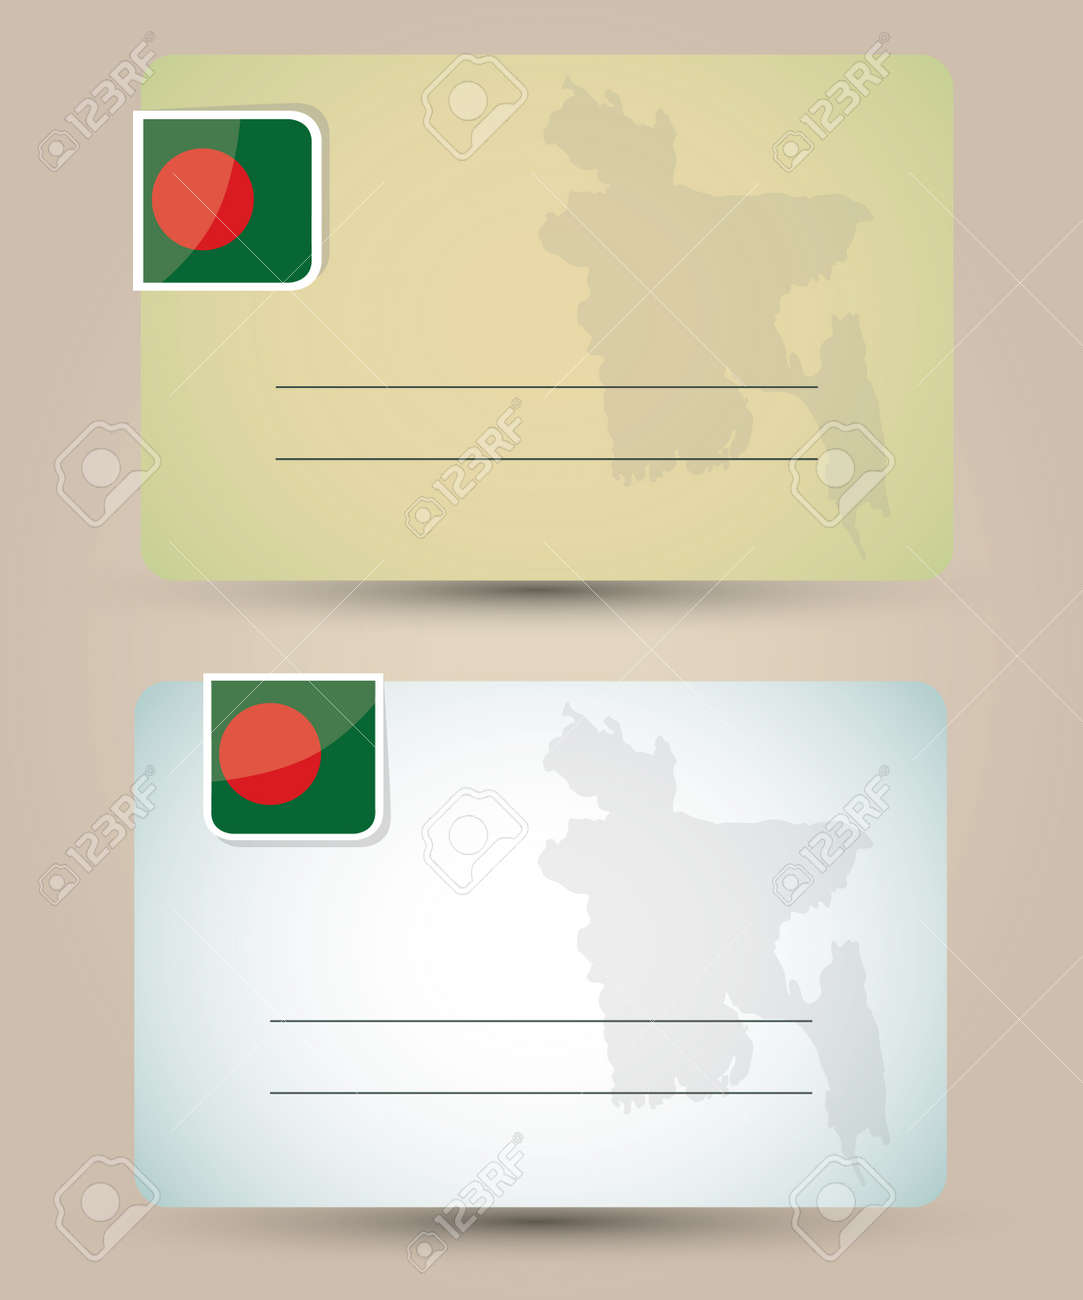 Business card with flag and map of bangladesh royalty free cliparts business card with flag and map of bangladesh stock vector 18882311 colourmoves